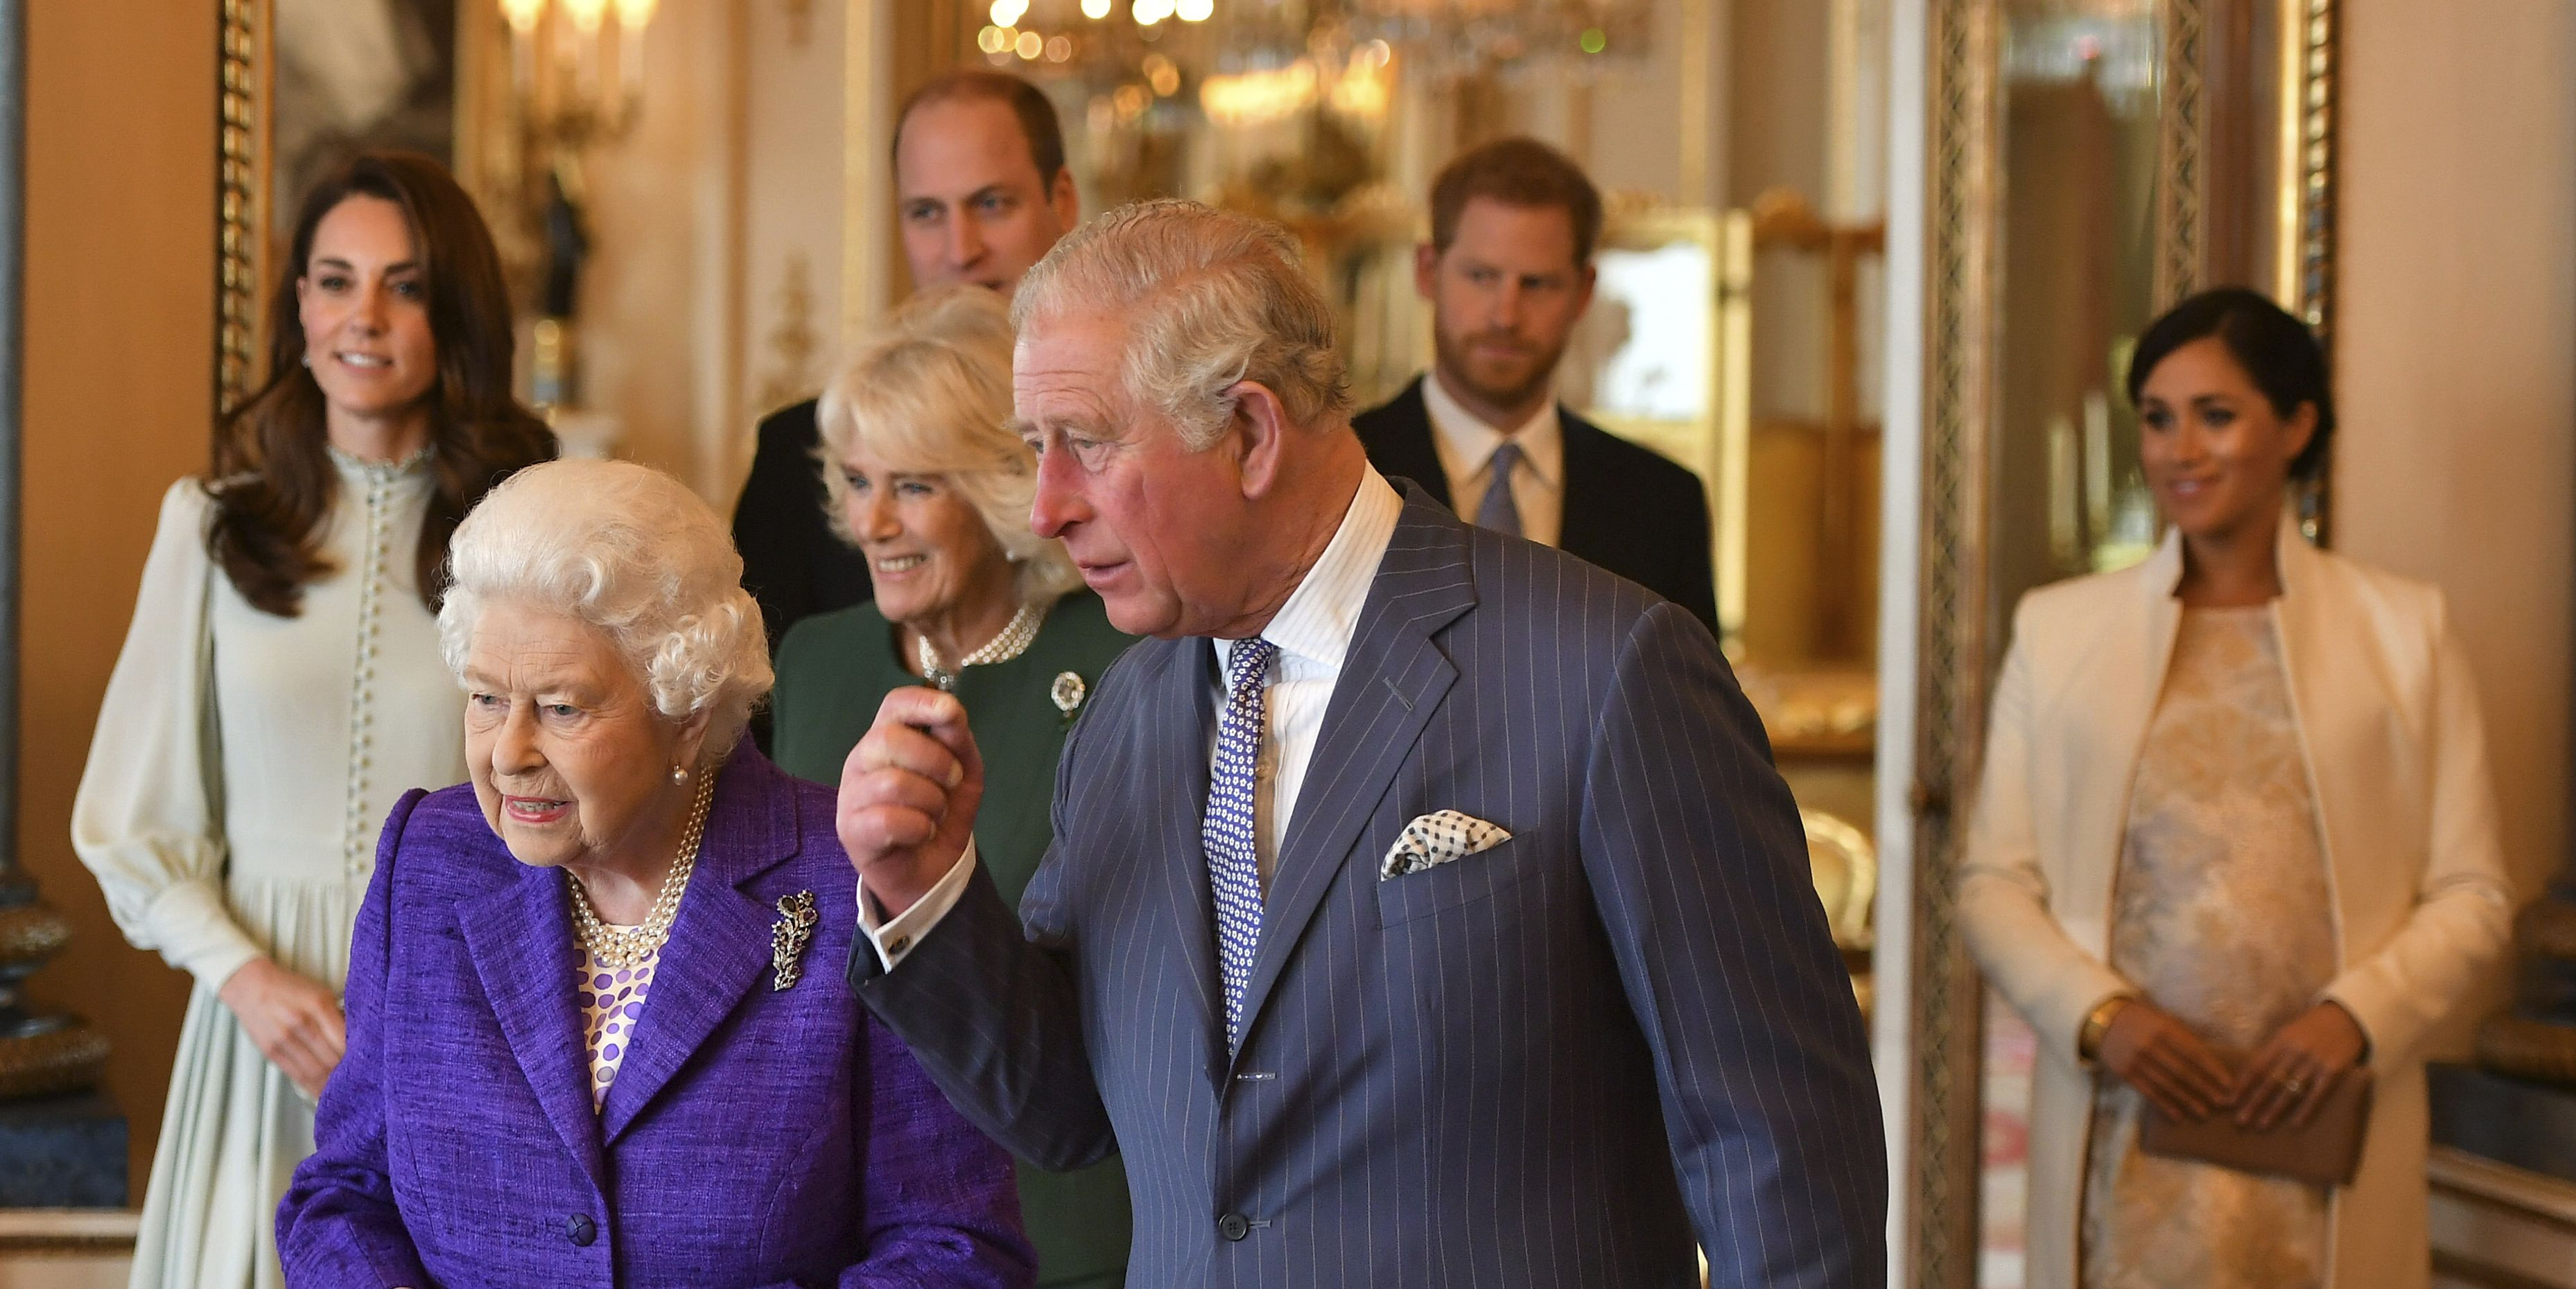 See All the Photos of the Royal Family at the 50th Anniversary of Prince Charles's Investiture